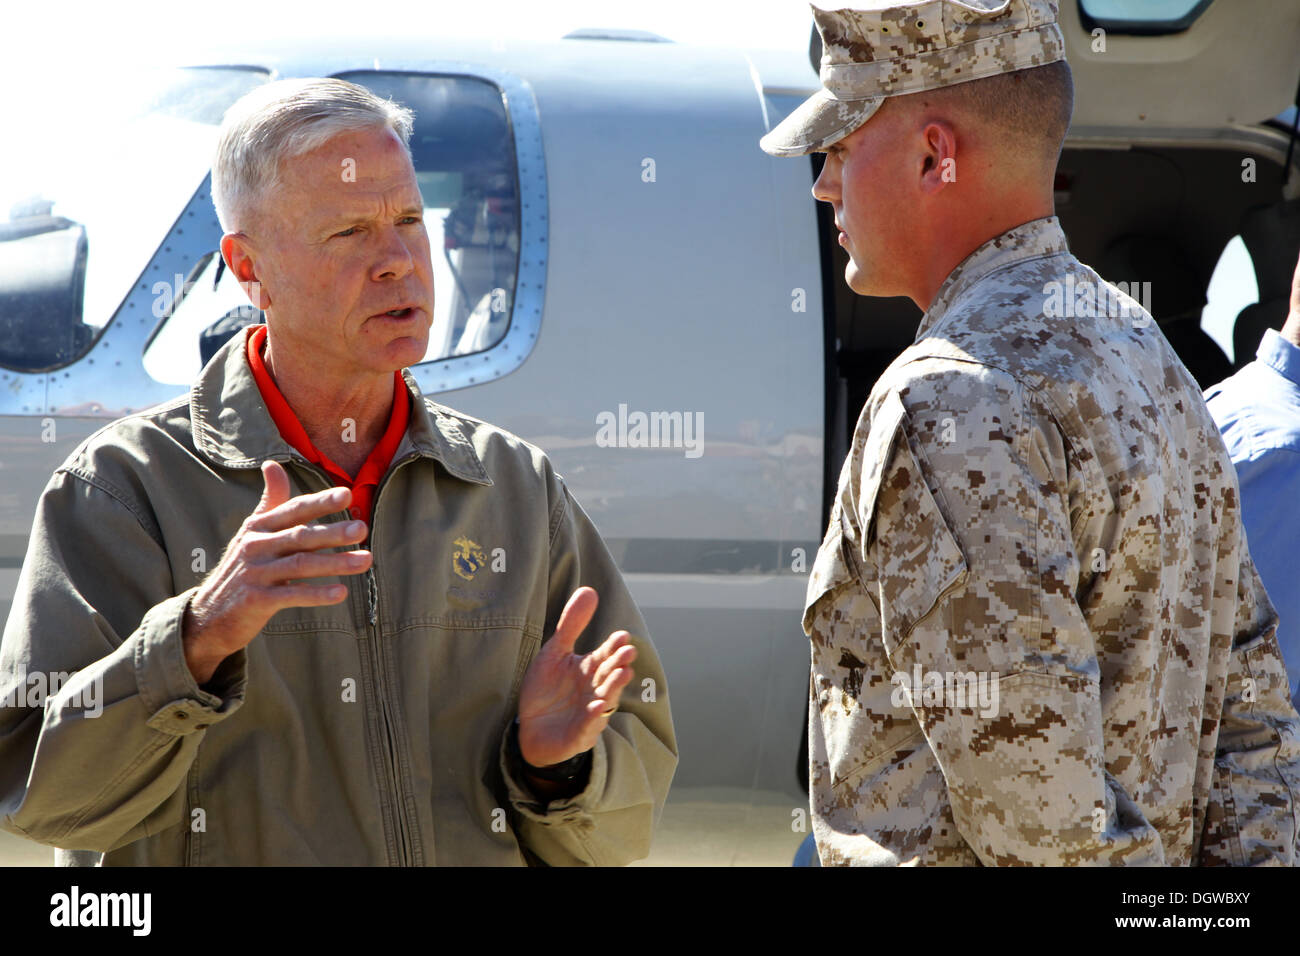 The commandant of the Marine Corps, Gen. James F. Amos, greets U. S. Marine Corps Sgt. Christopher A. Prior, right, Stock Photo